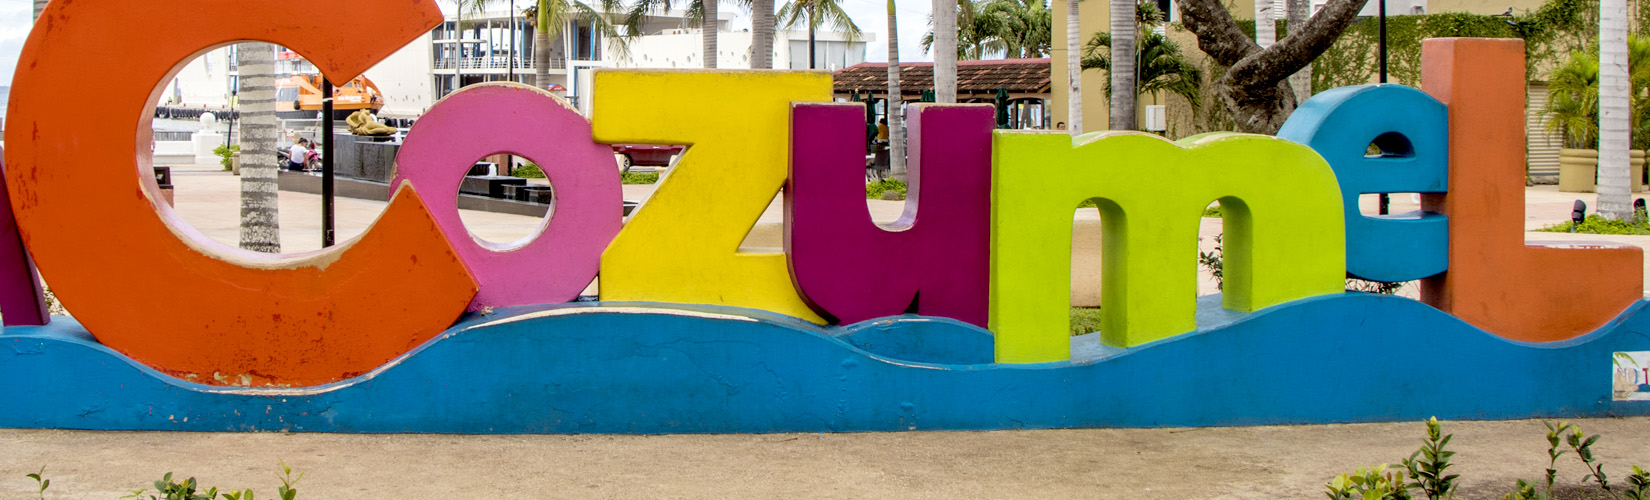 One Day in Cozumel... or More! Your Guide to Exploring the Island :: I've Been Bit! A Travel Blog